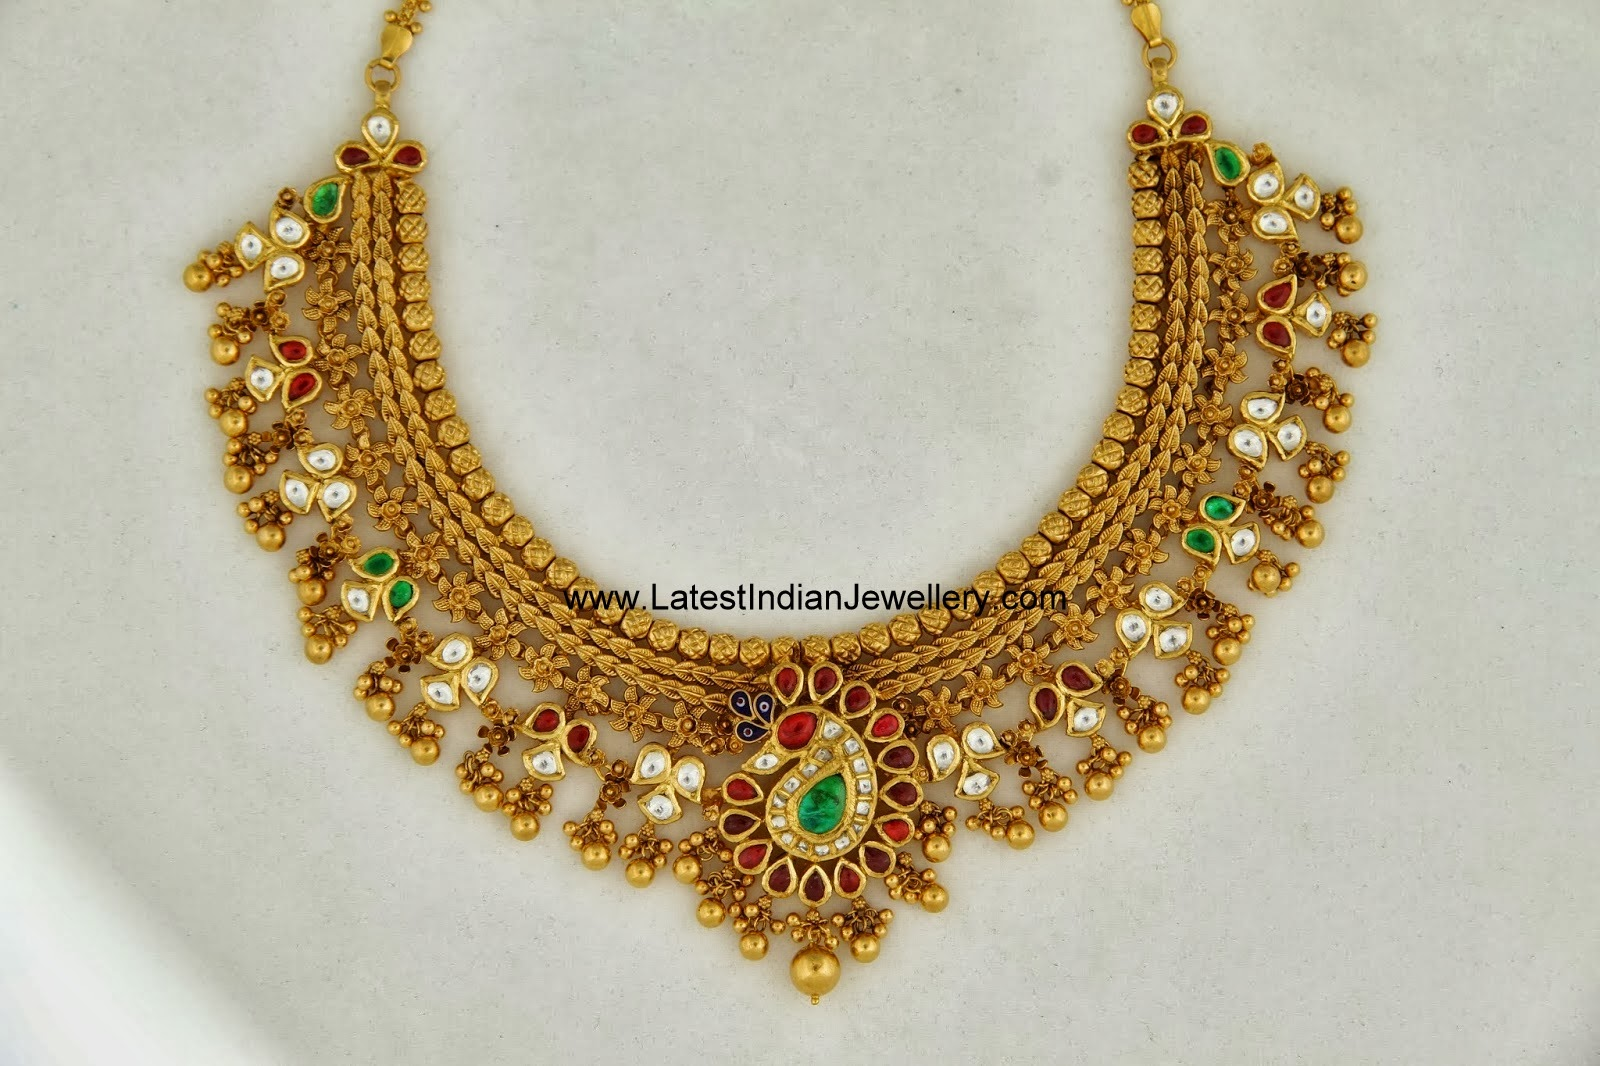 Antique Gold Choker Necklace